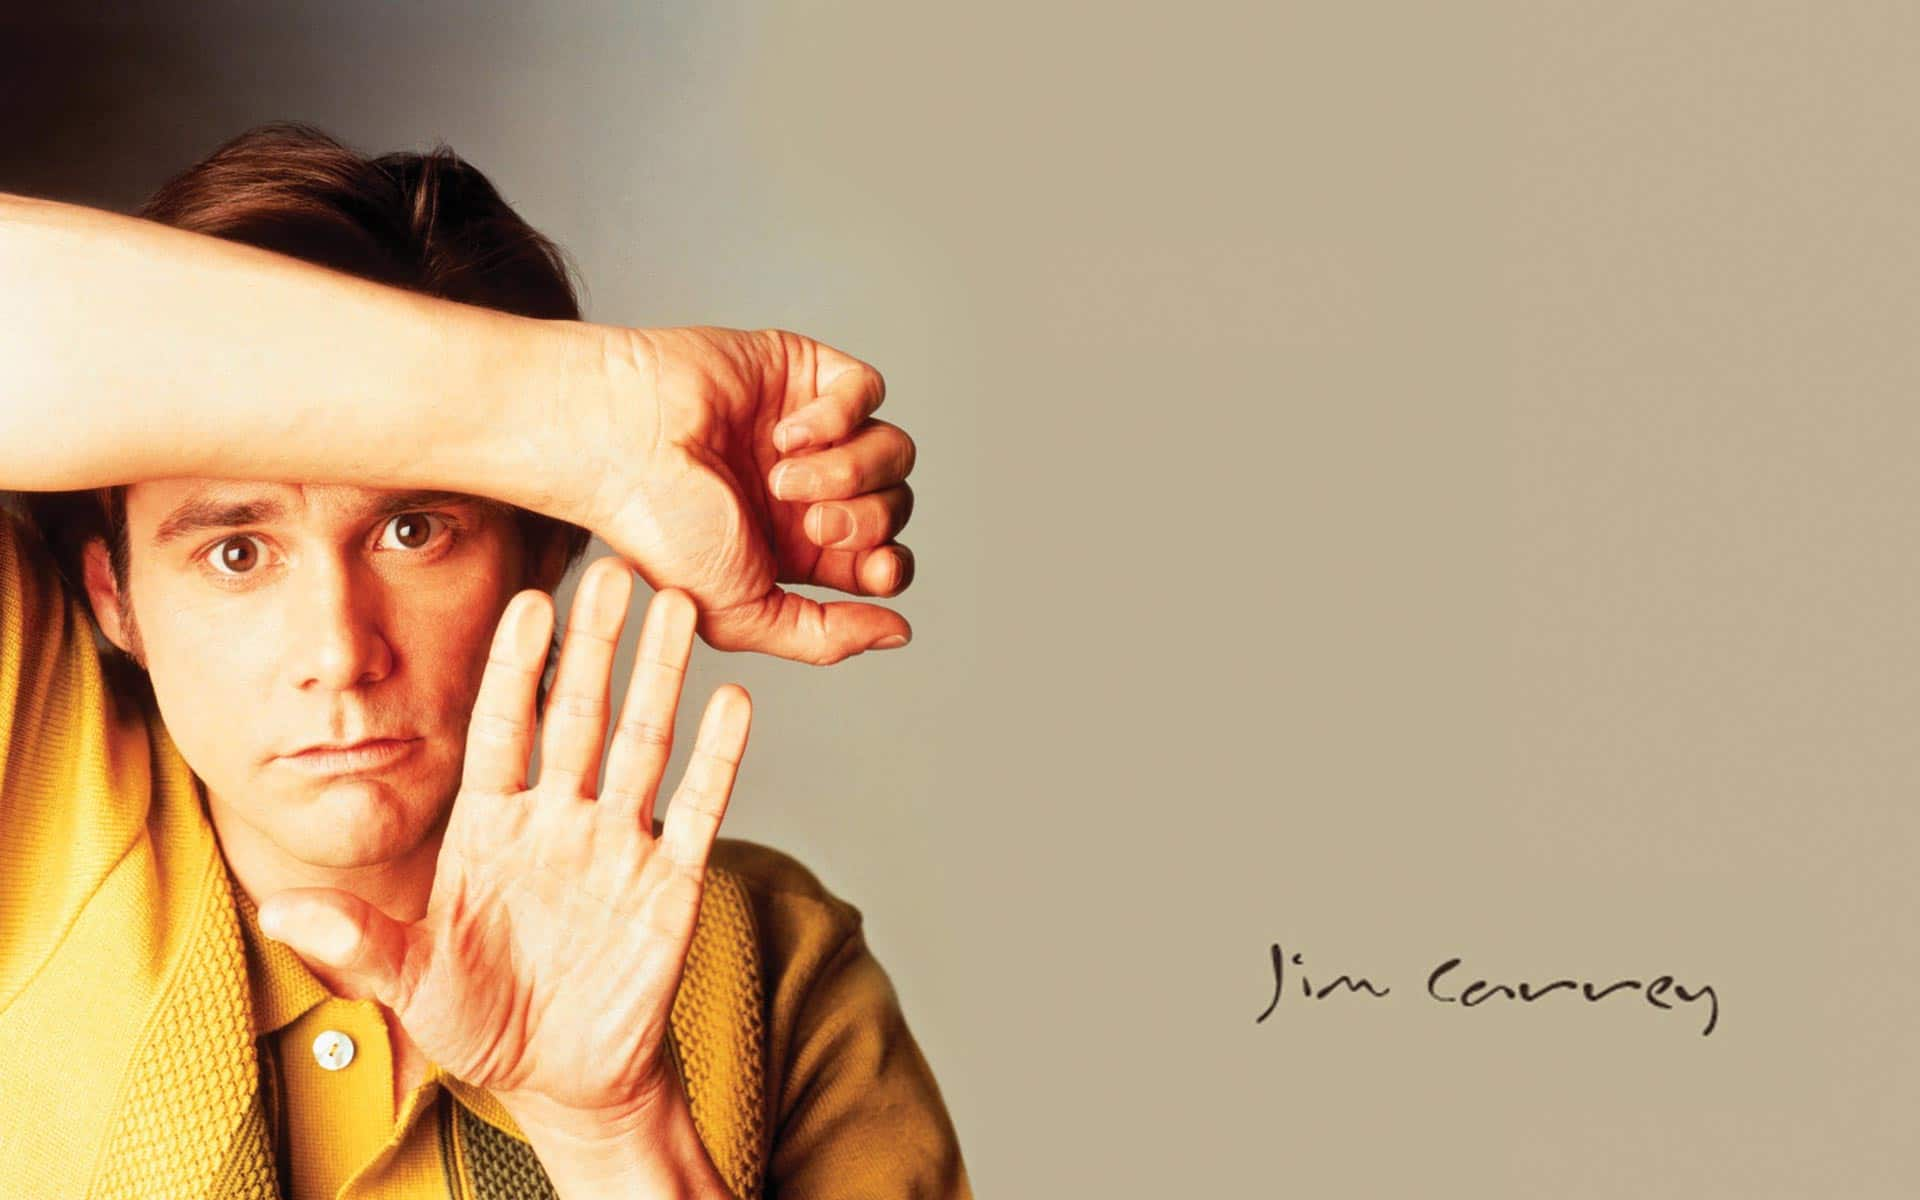 alignthoughts-poor-to-rich-famous-stars-jim-carrey